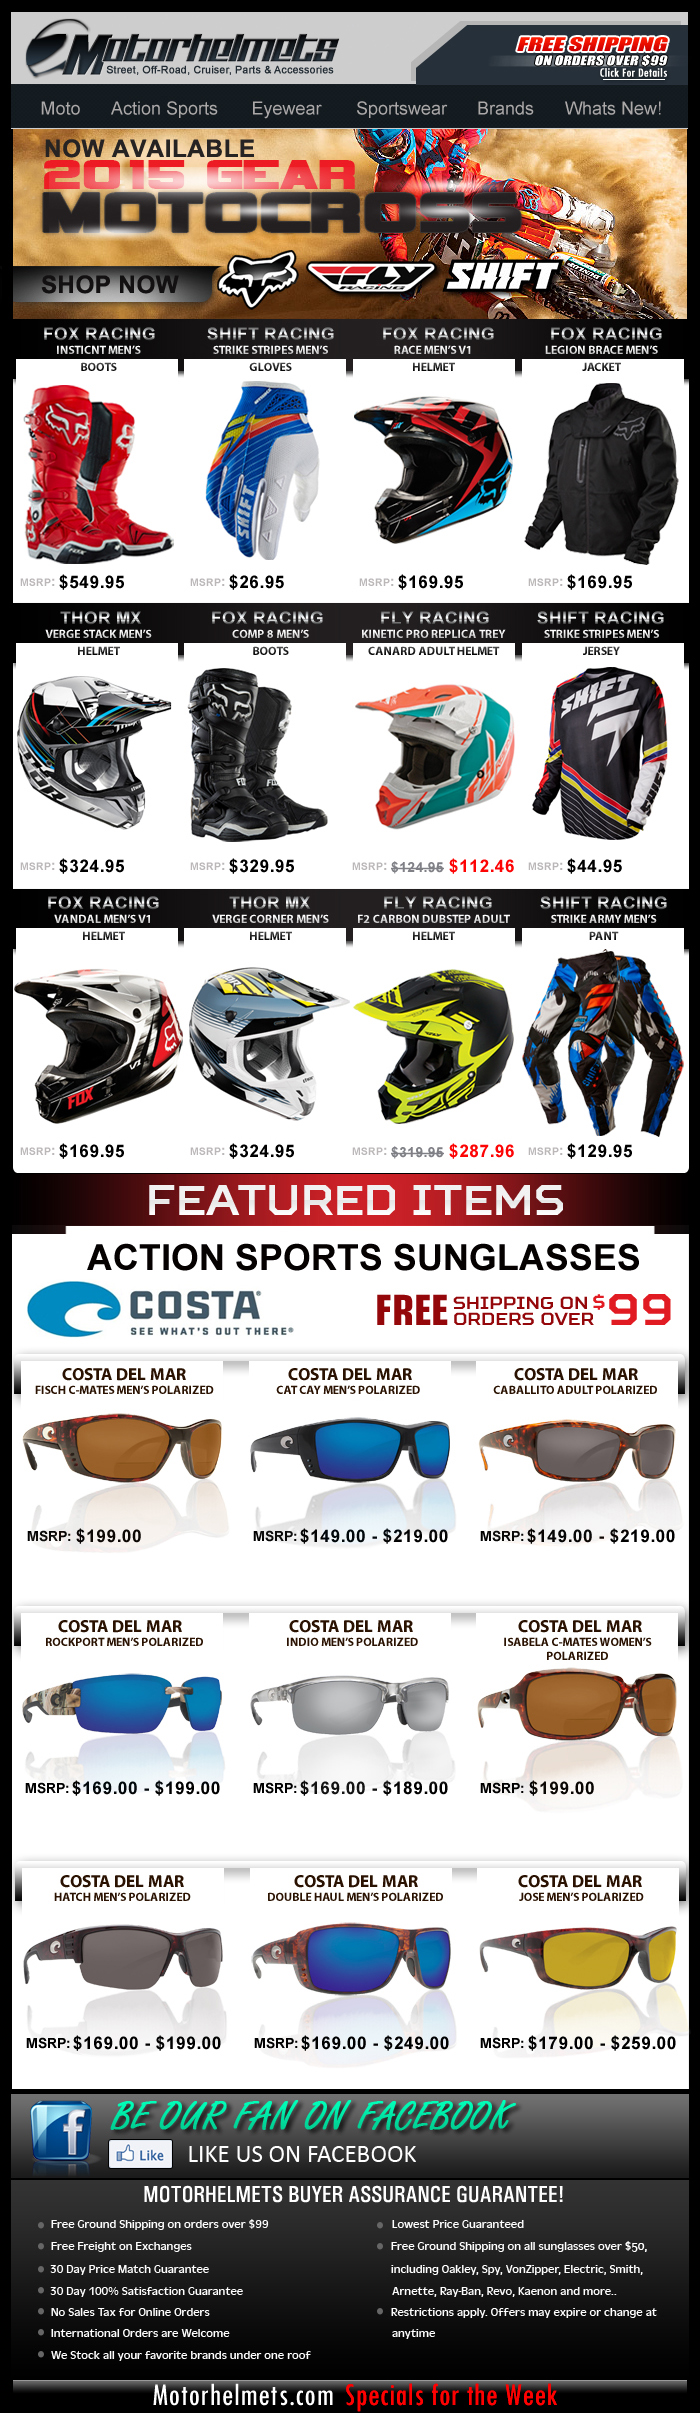 New MX Gear Arrivals from Fox, Shift, Fly Racing and more!